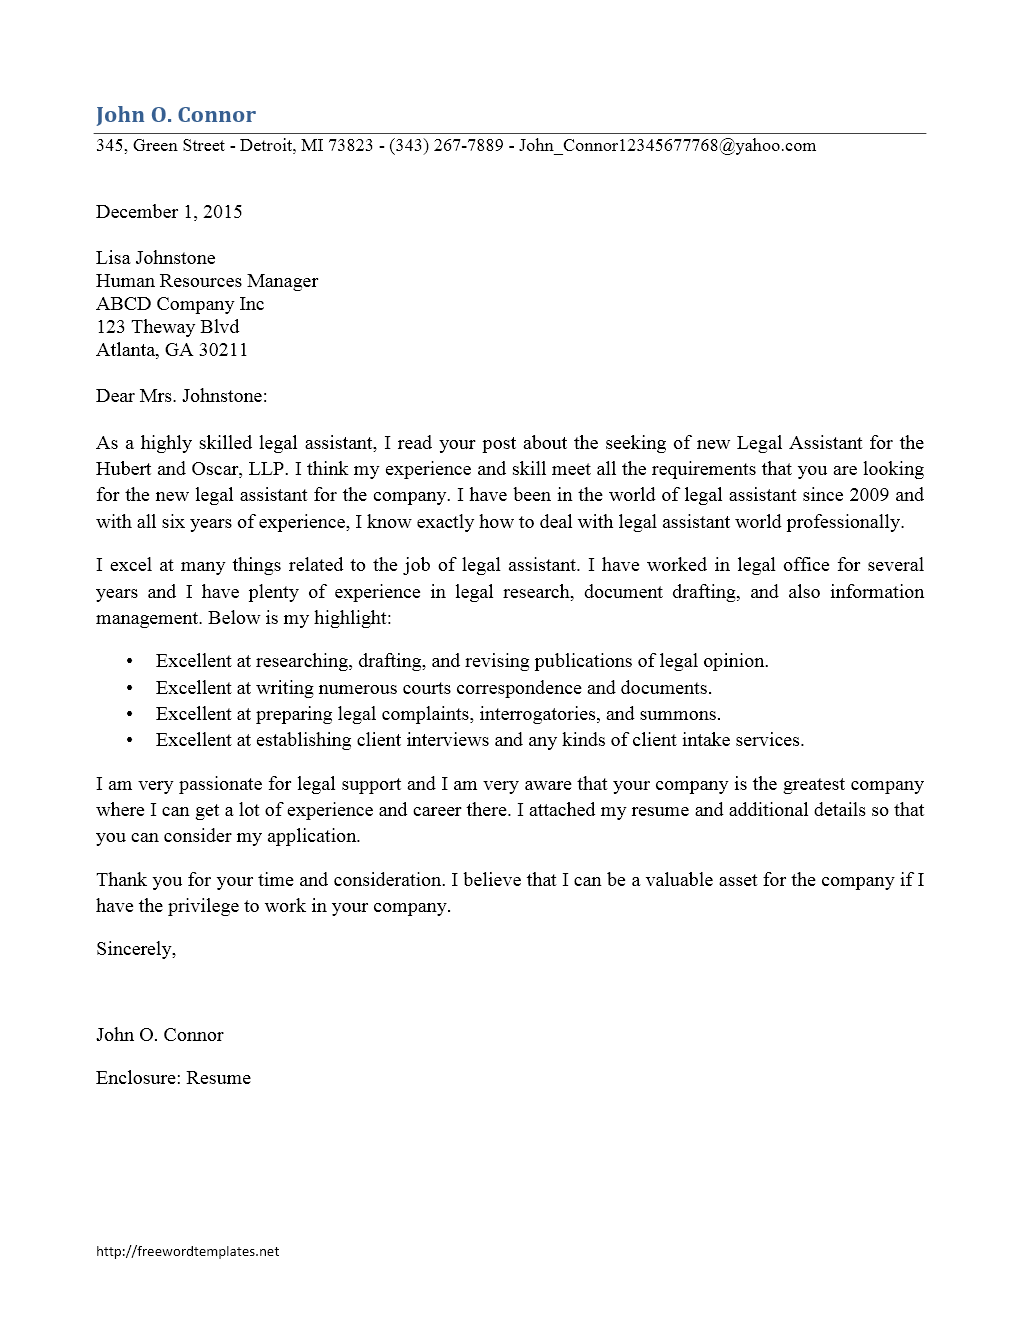 Cover Letter Template - Legal Assistant